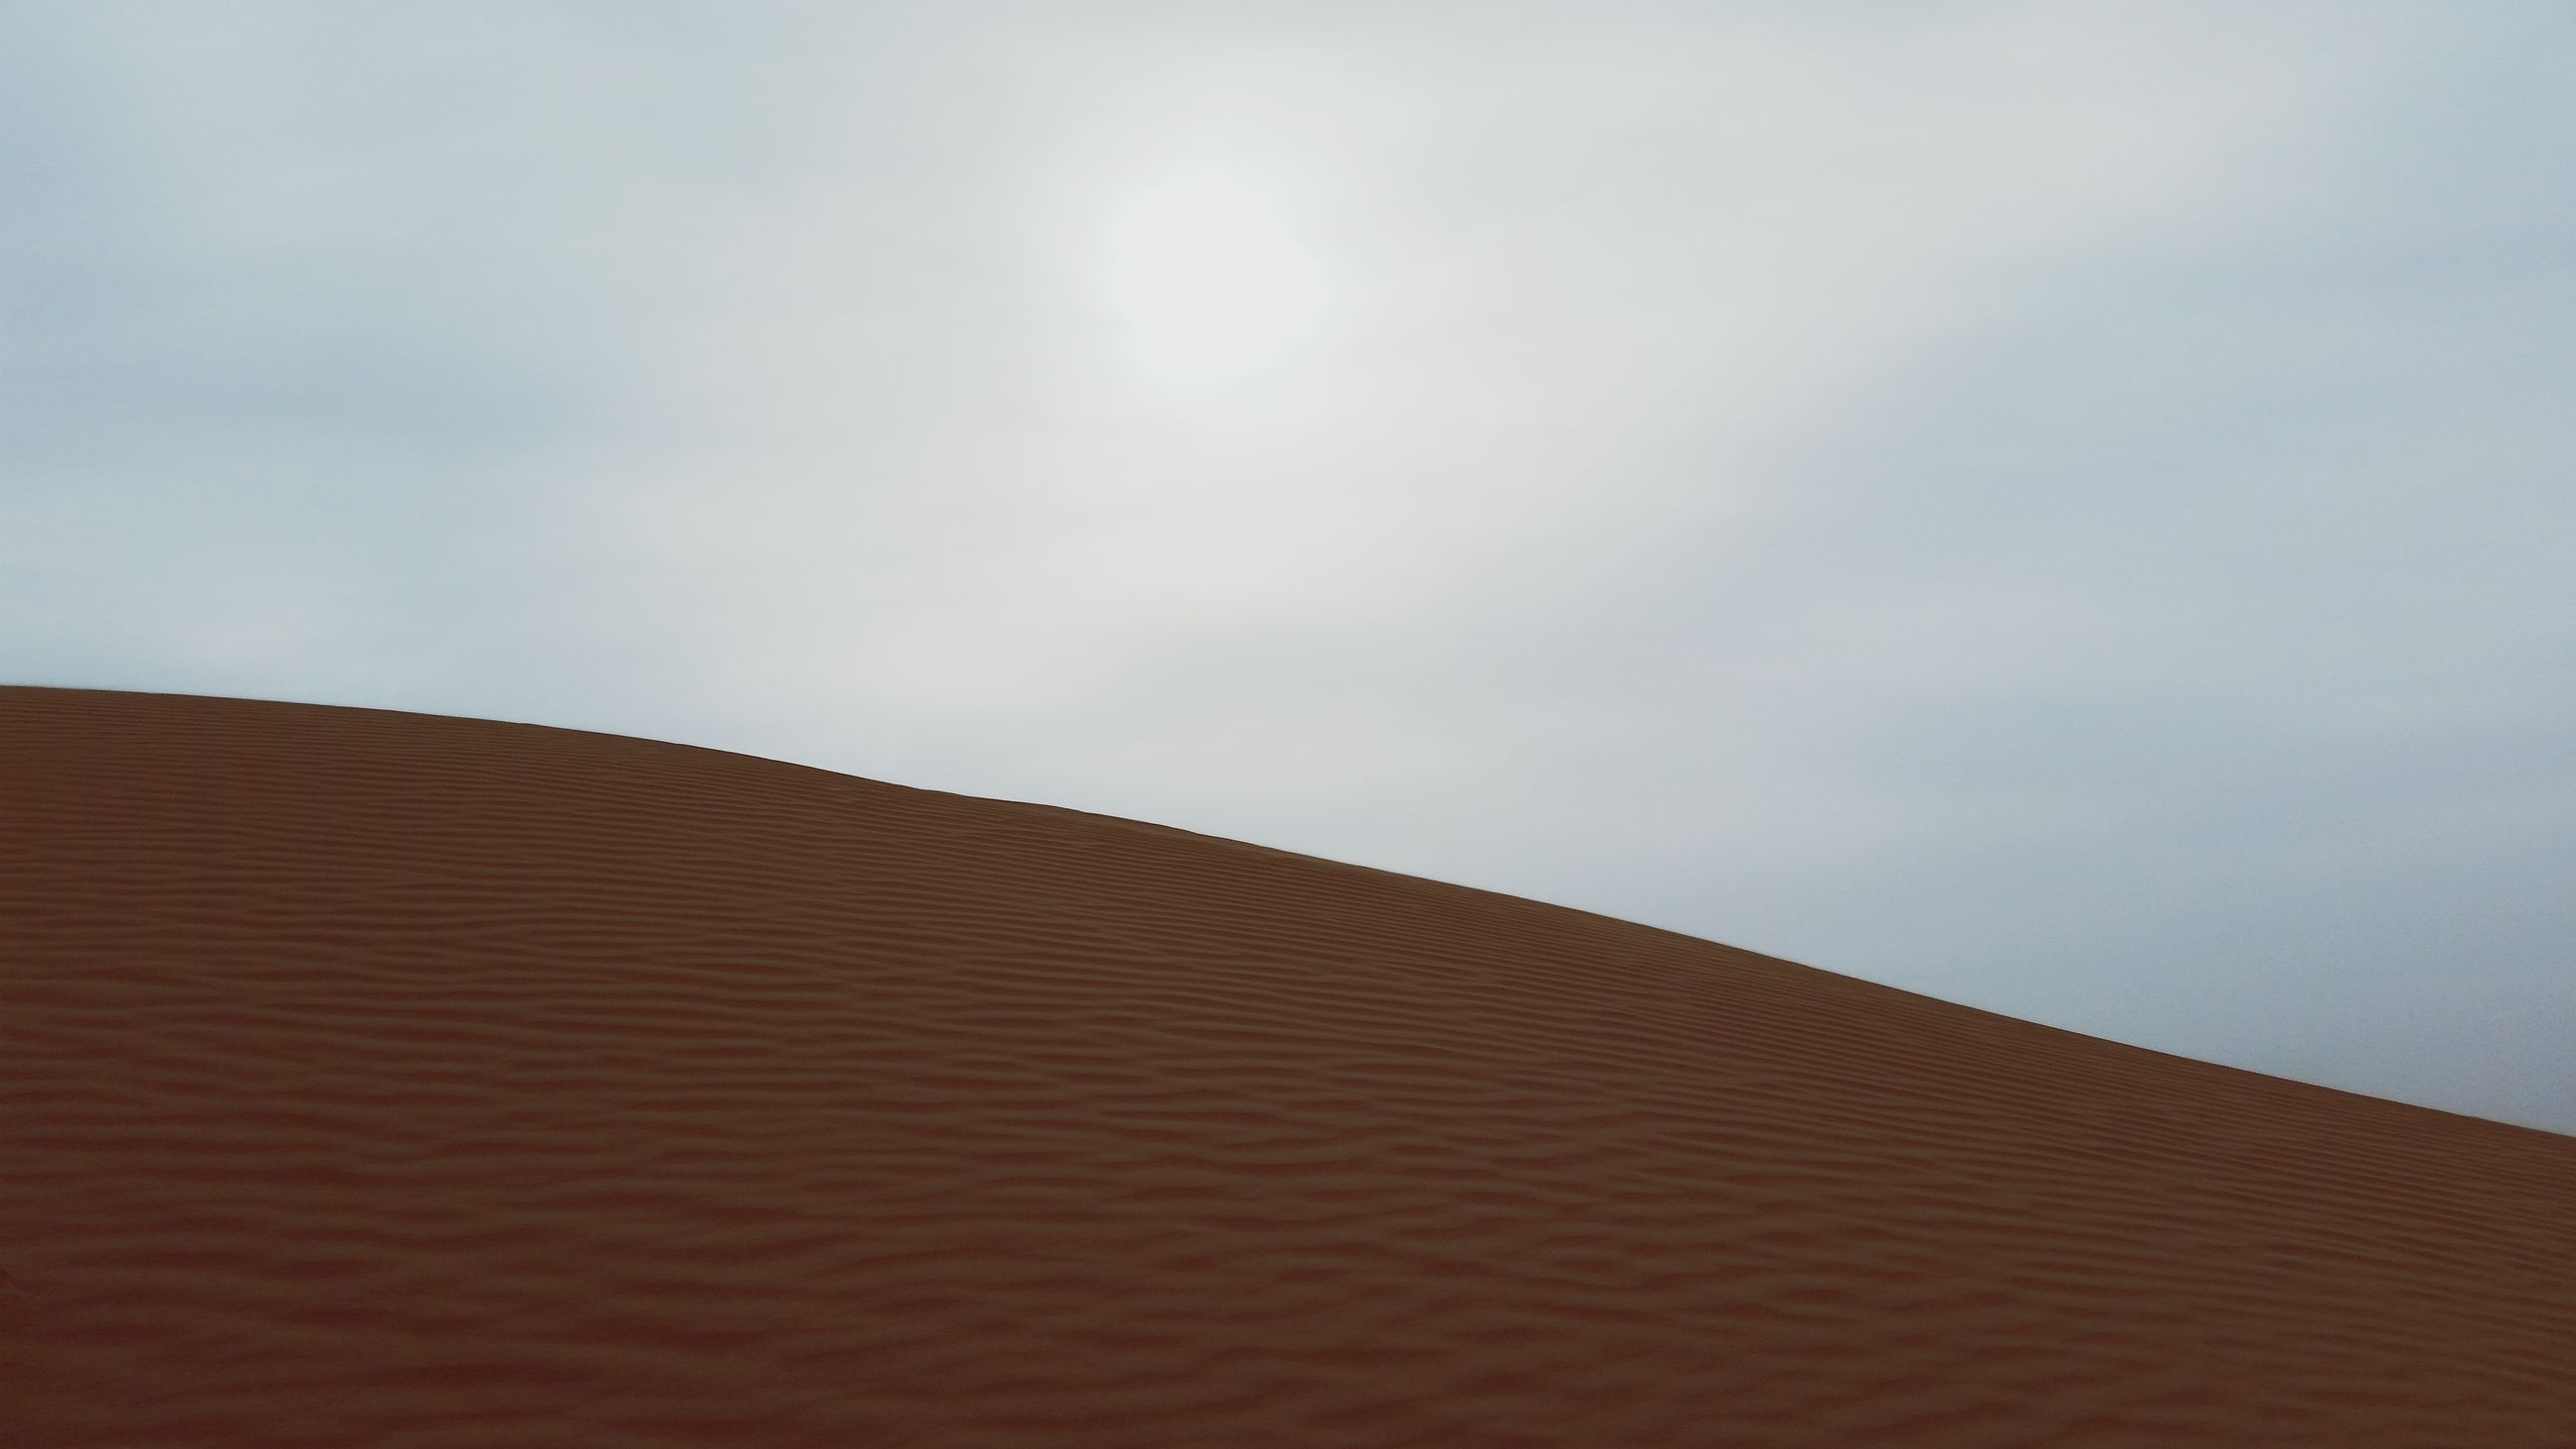 nature, desert, no people, sand dune, day, outdoors, beauty in nature, scenics, low angle view, tranquil scene, arid climate, sky